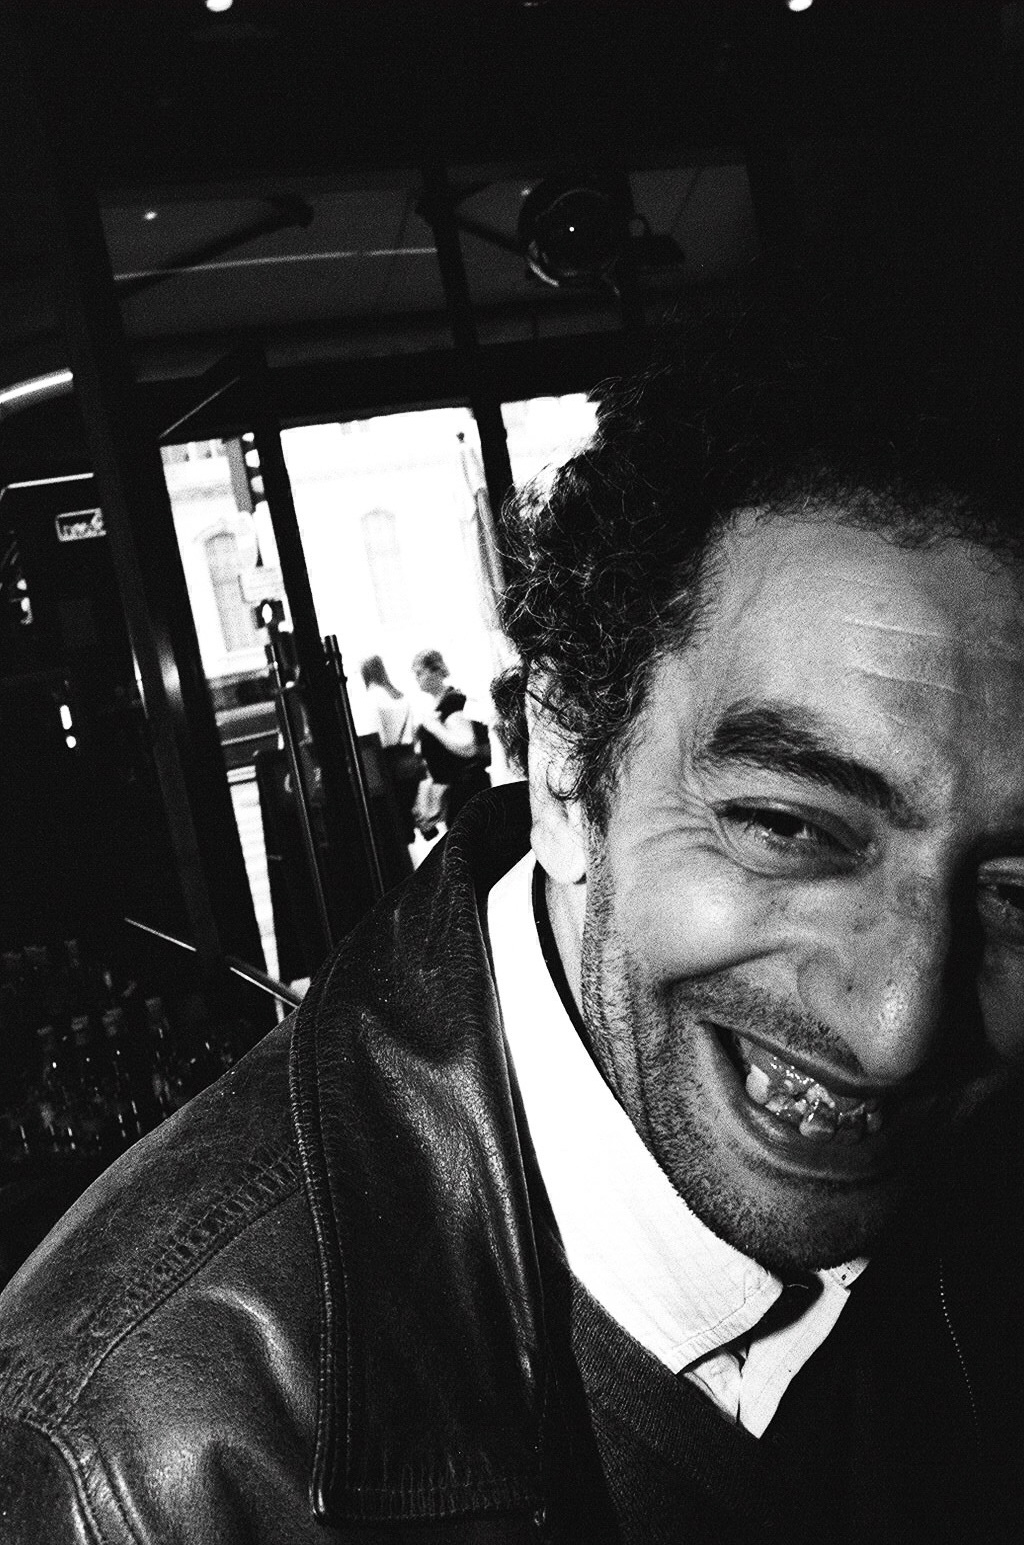 Laughing man in Paris. 2015.